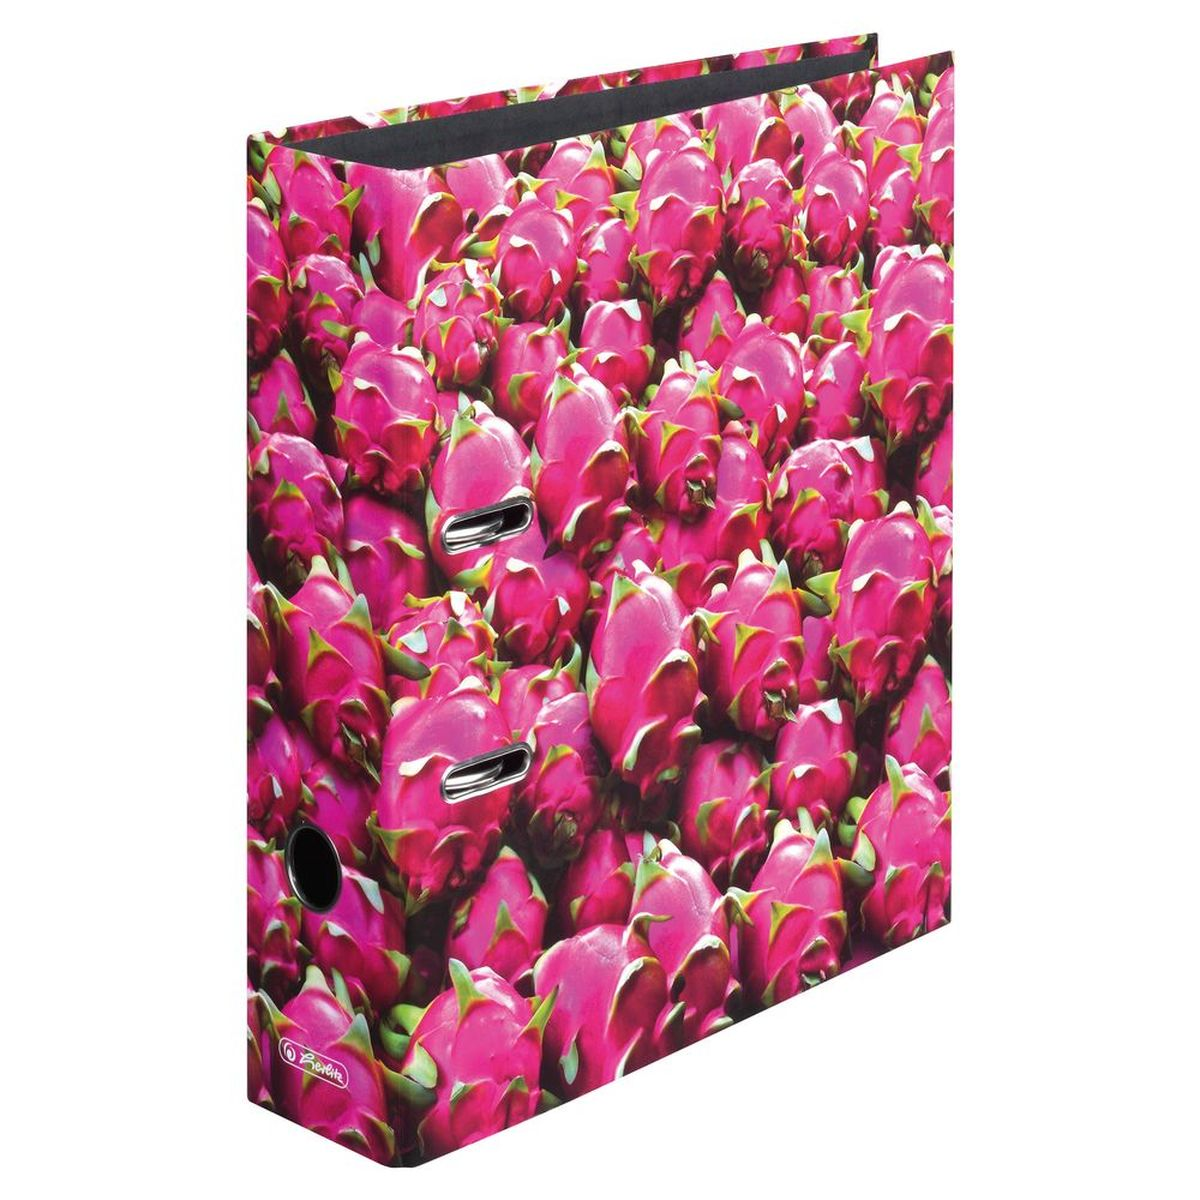 Herlitz Папка-регистратор MaX.file Dragon Fruit -  Папки